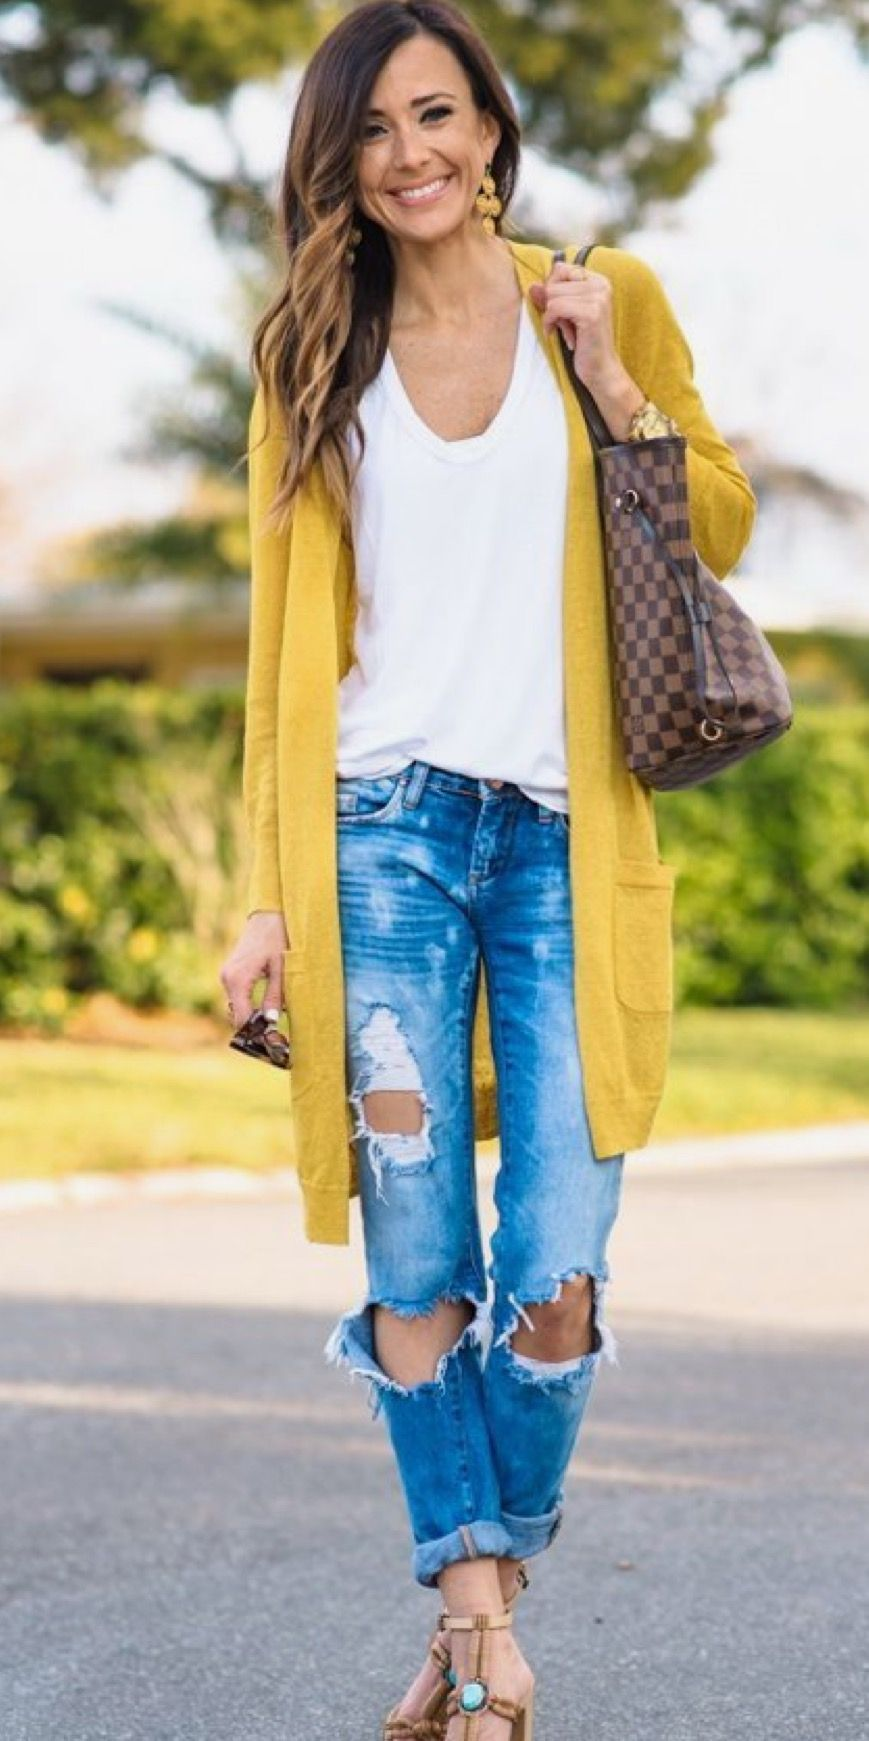 Get fabulous looks like this one and many more delivered right to your door with Stitch Fix.